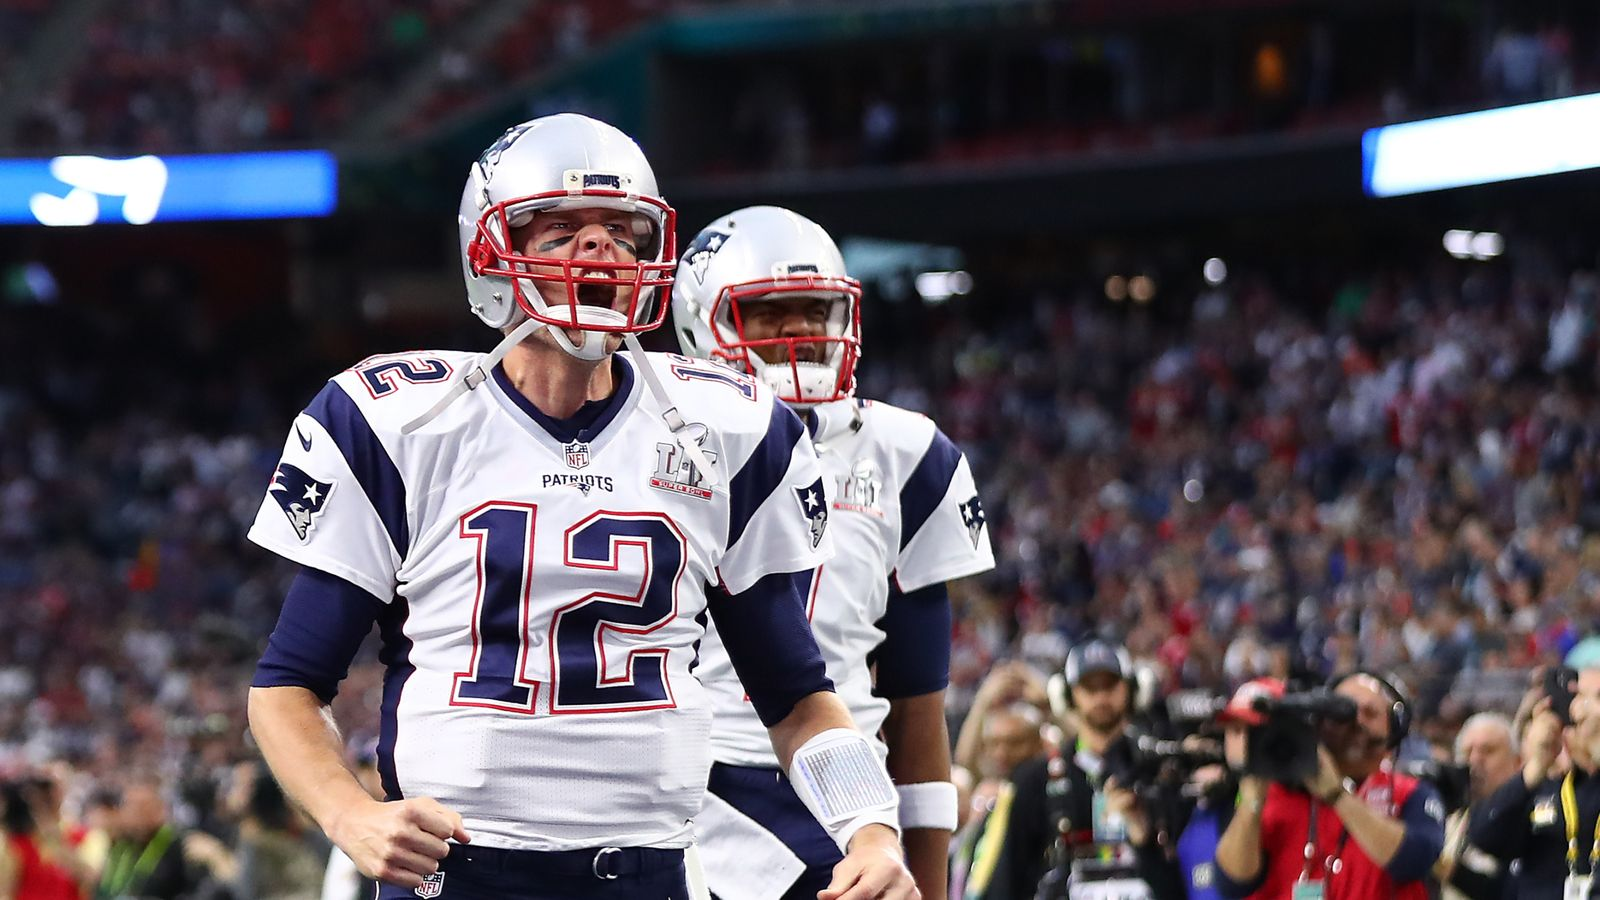 Tom Brady's missing Super Bowl 51 jersey valued at $500,000 by Houston police